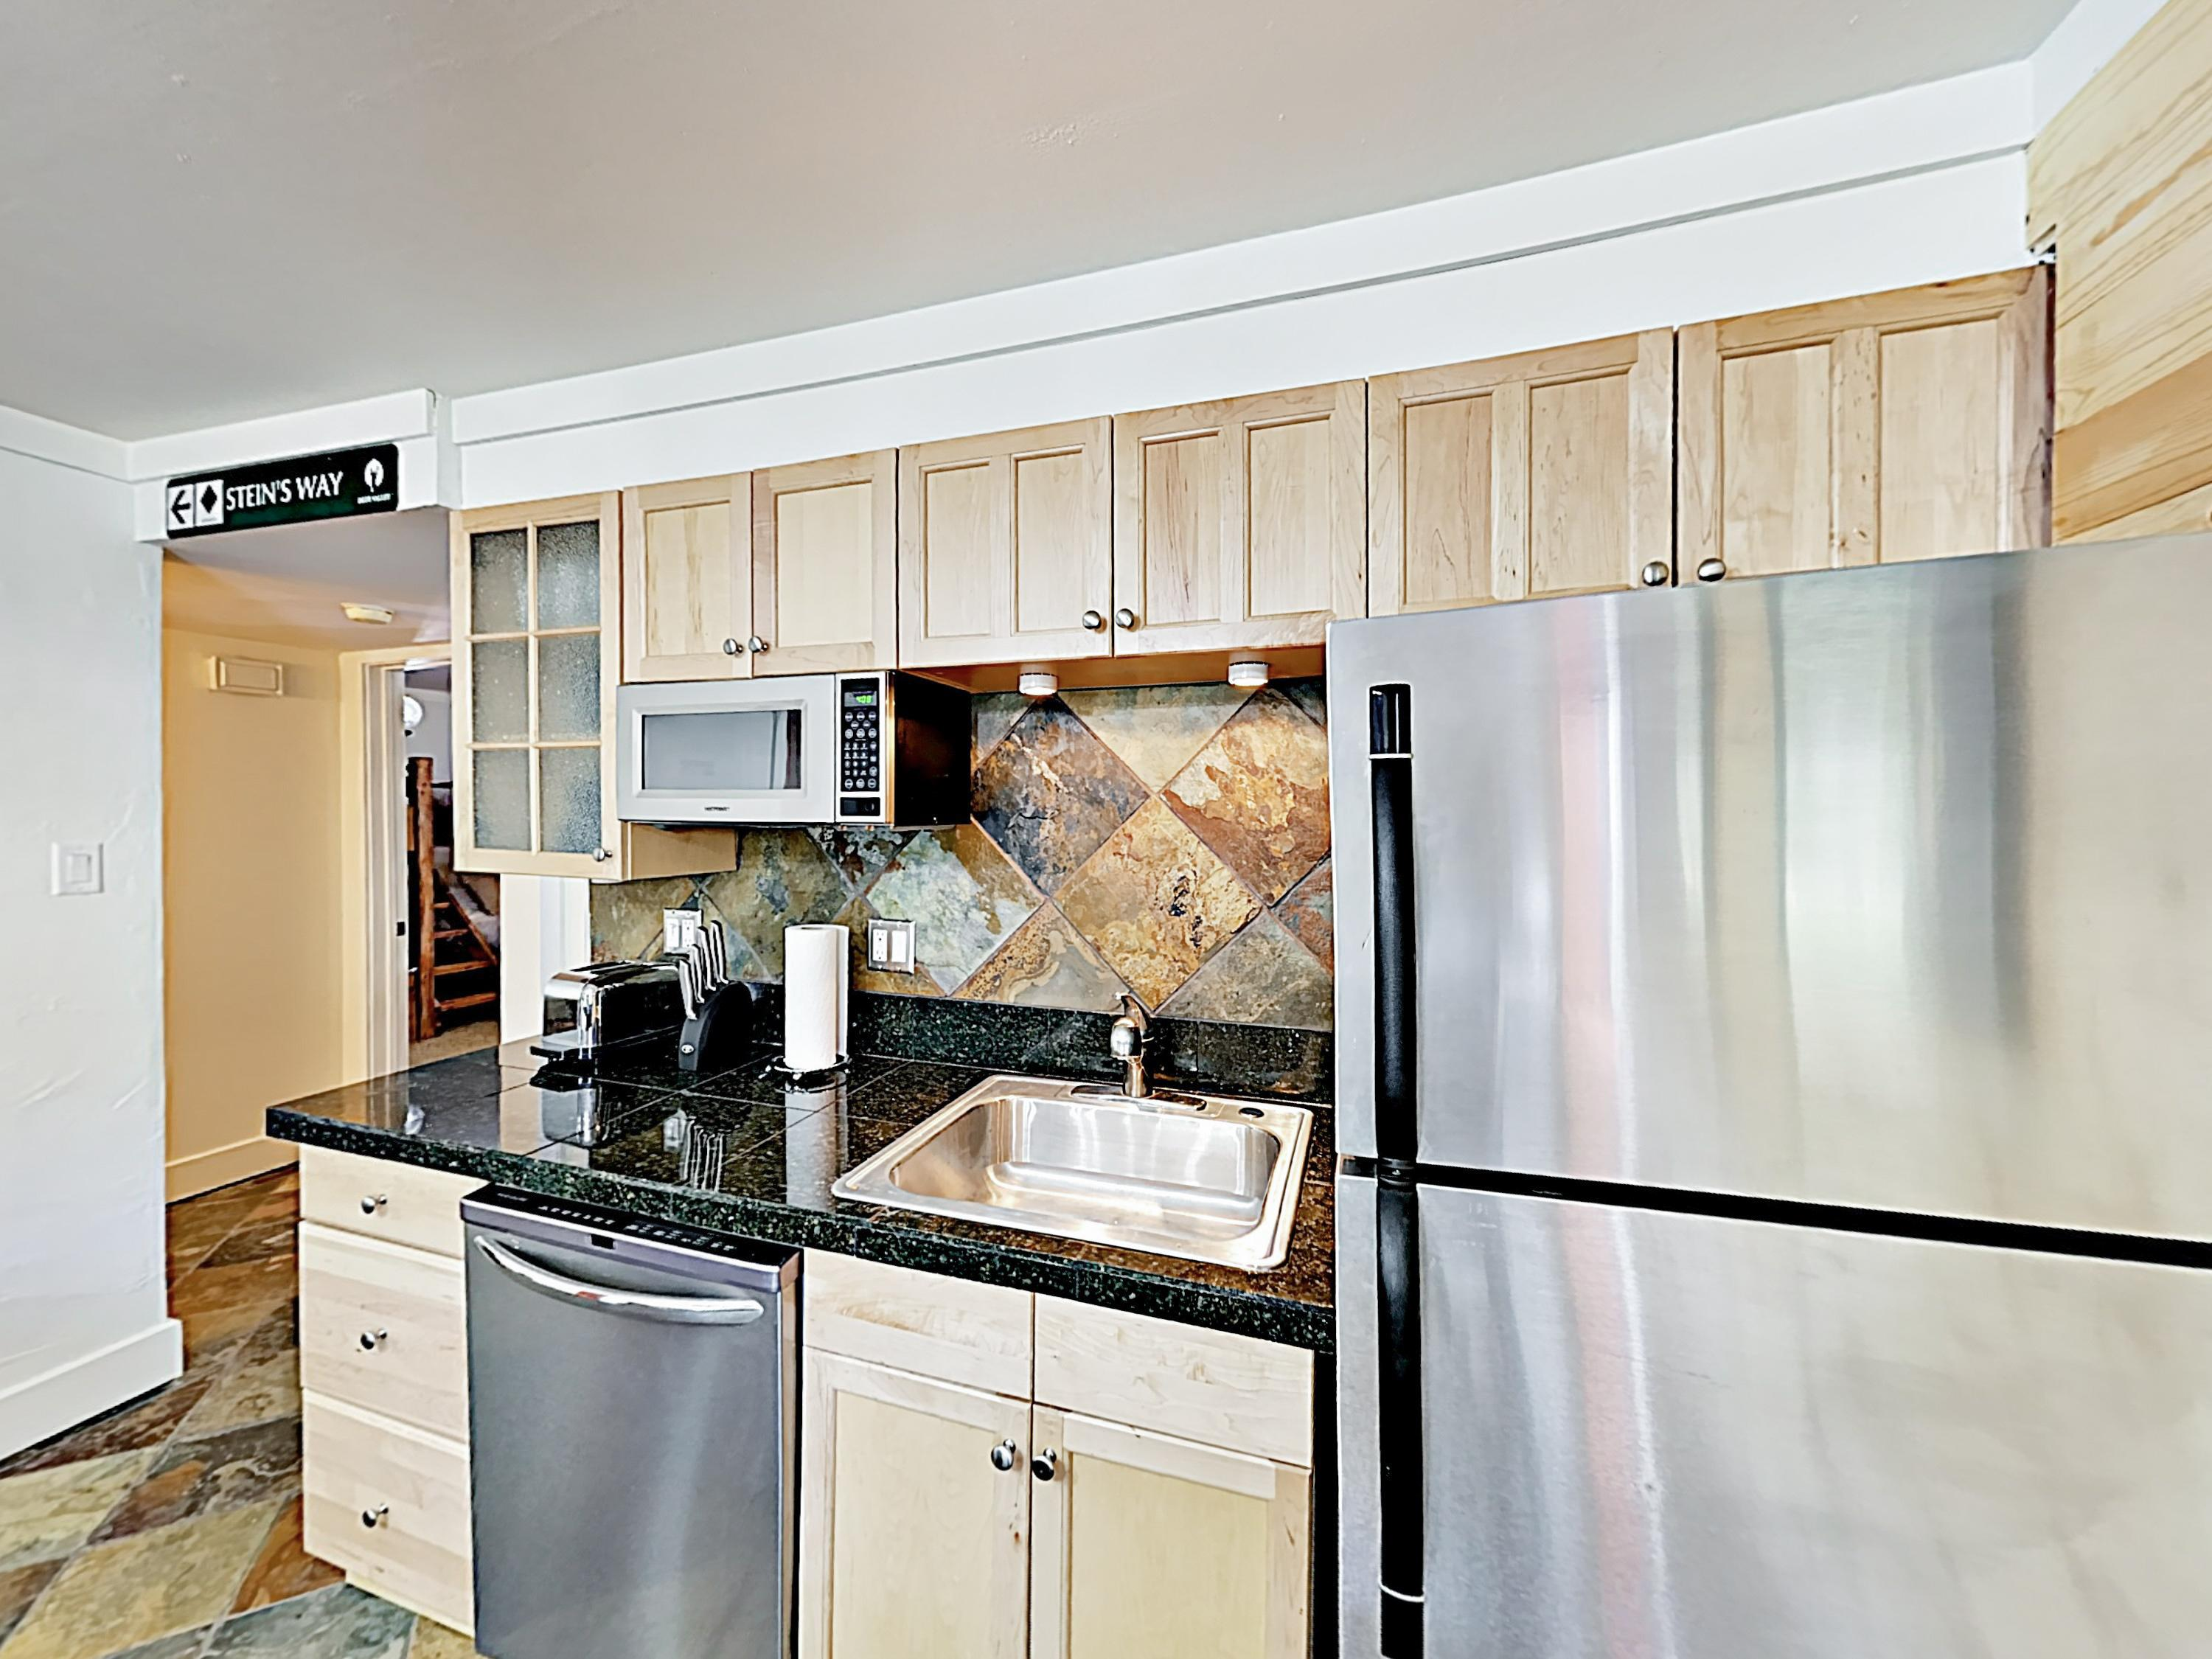 Channel your inner chef in the gourmet kitchen, outfitted with granite countertops, designer stainless steel appliances, and stone tile.